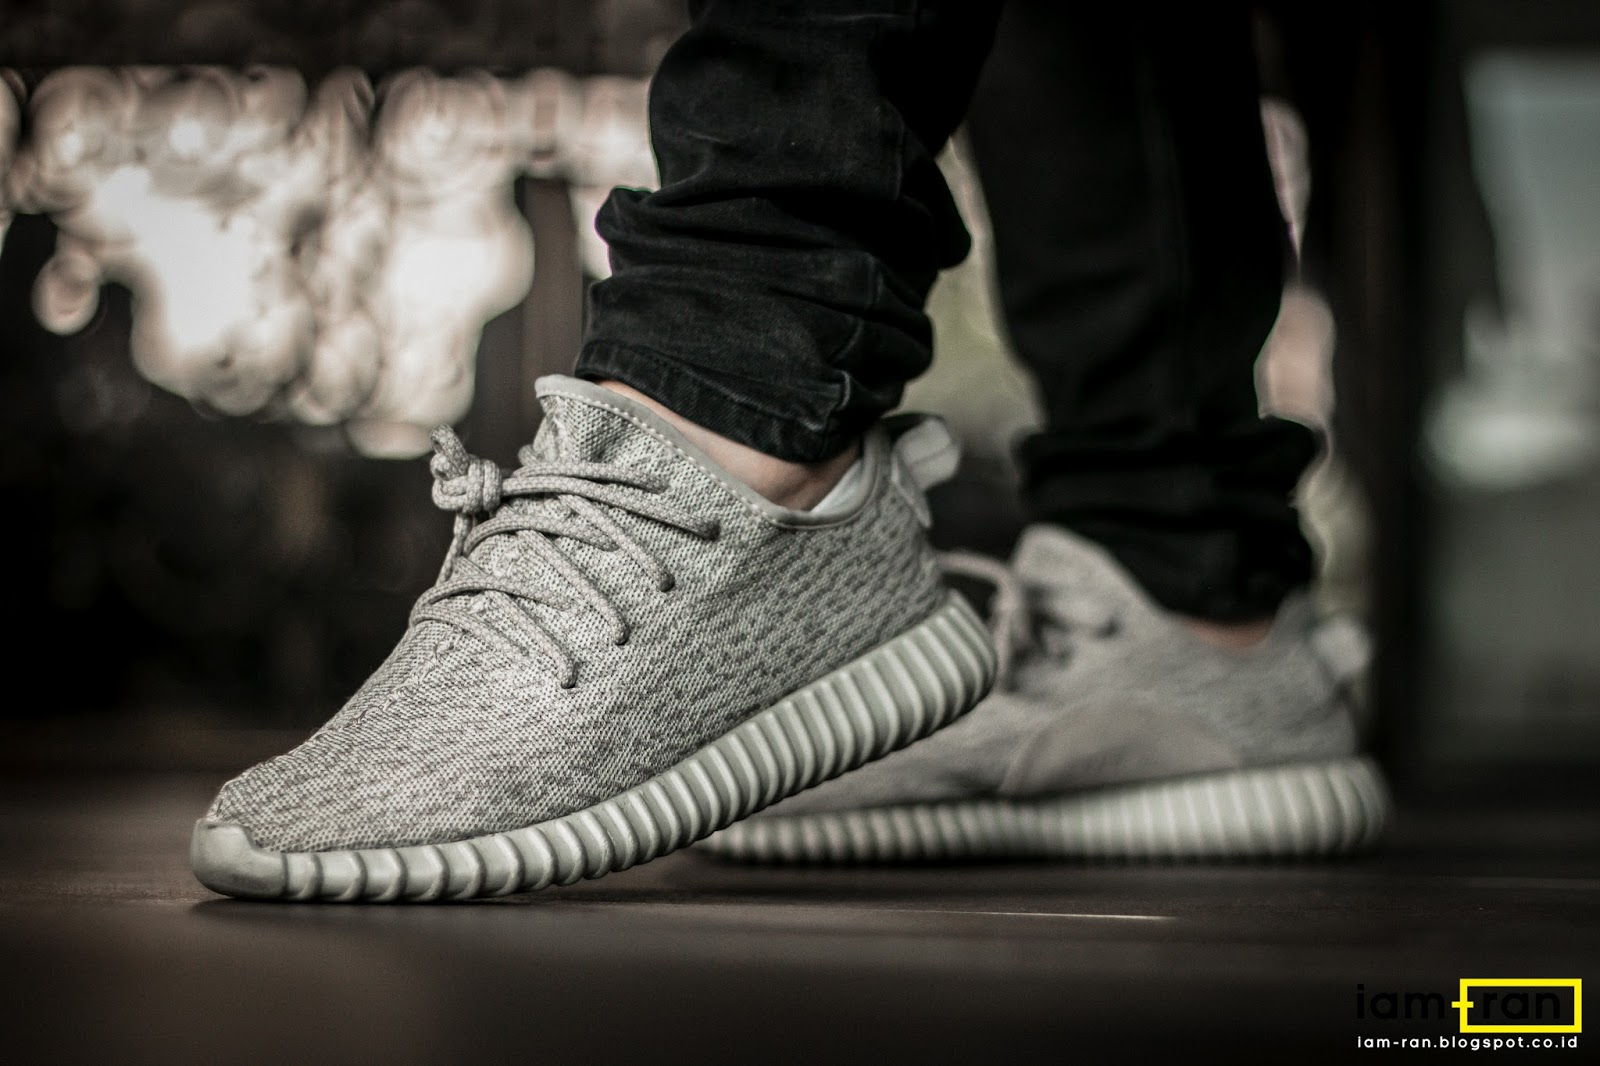 77% Off Yeezy boost 350 moonrock australia Half Sizes